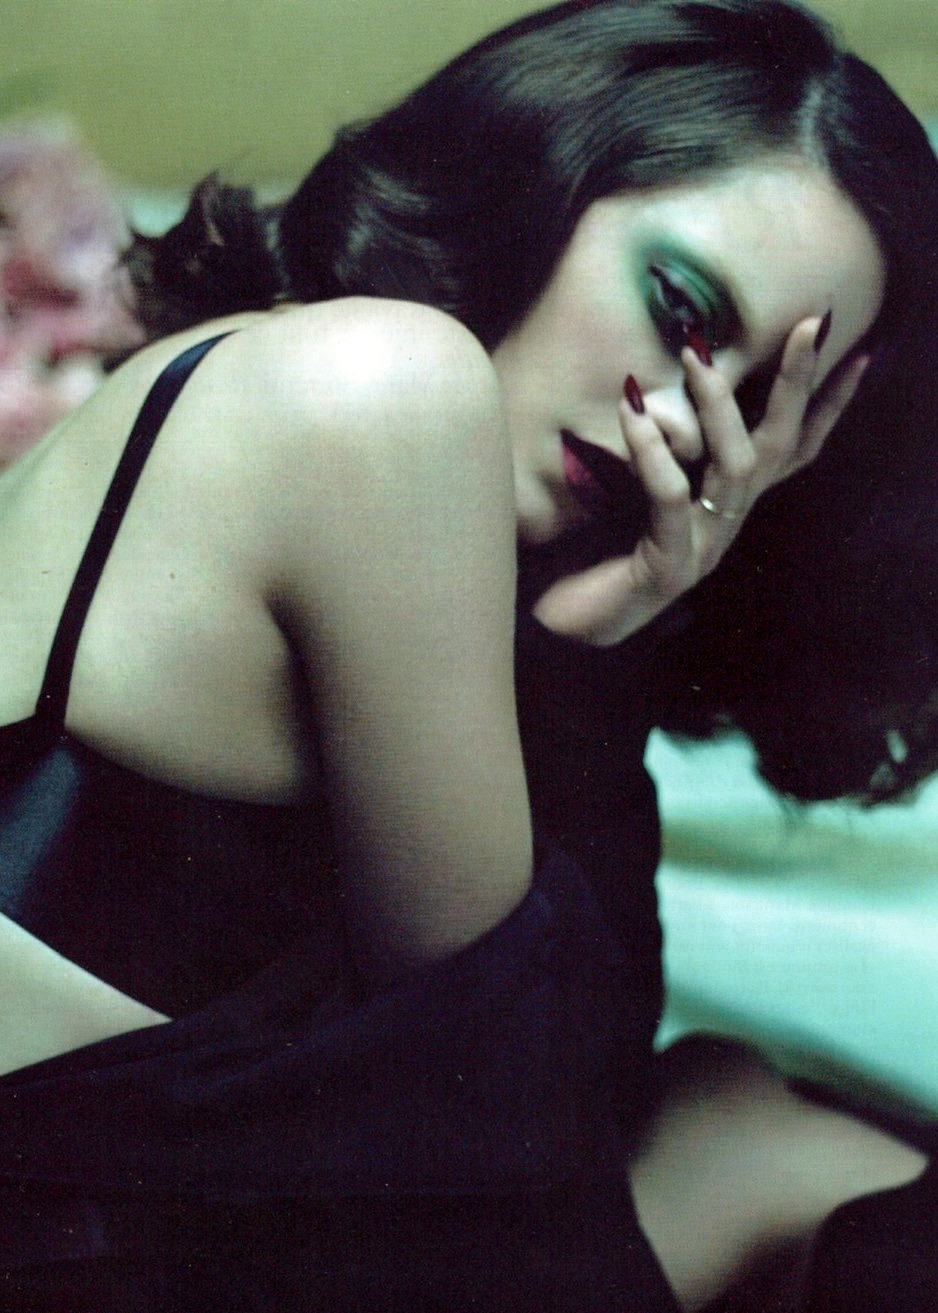 Marion Dans les Yeux, Marion Cotillard by Mert & Marcus for Vogue Paris September 2010.